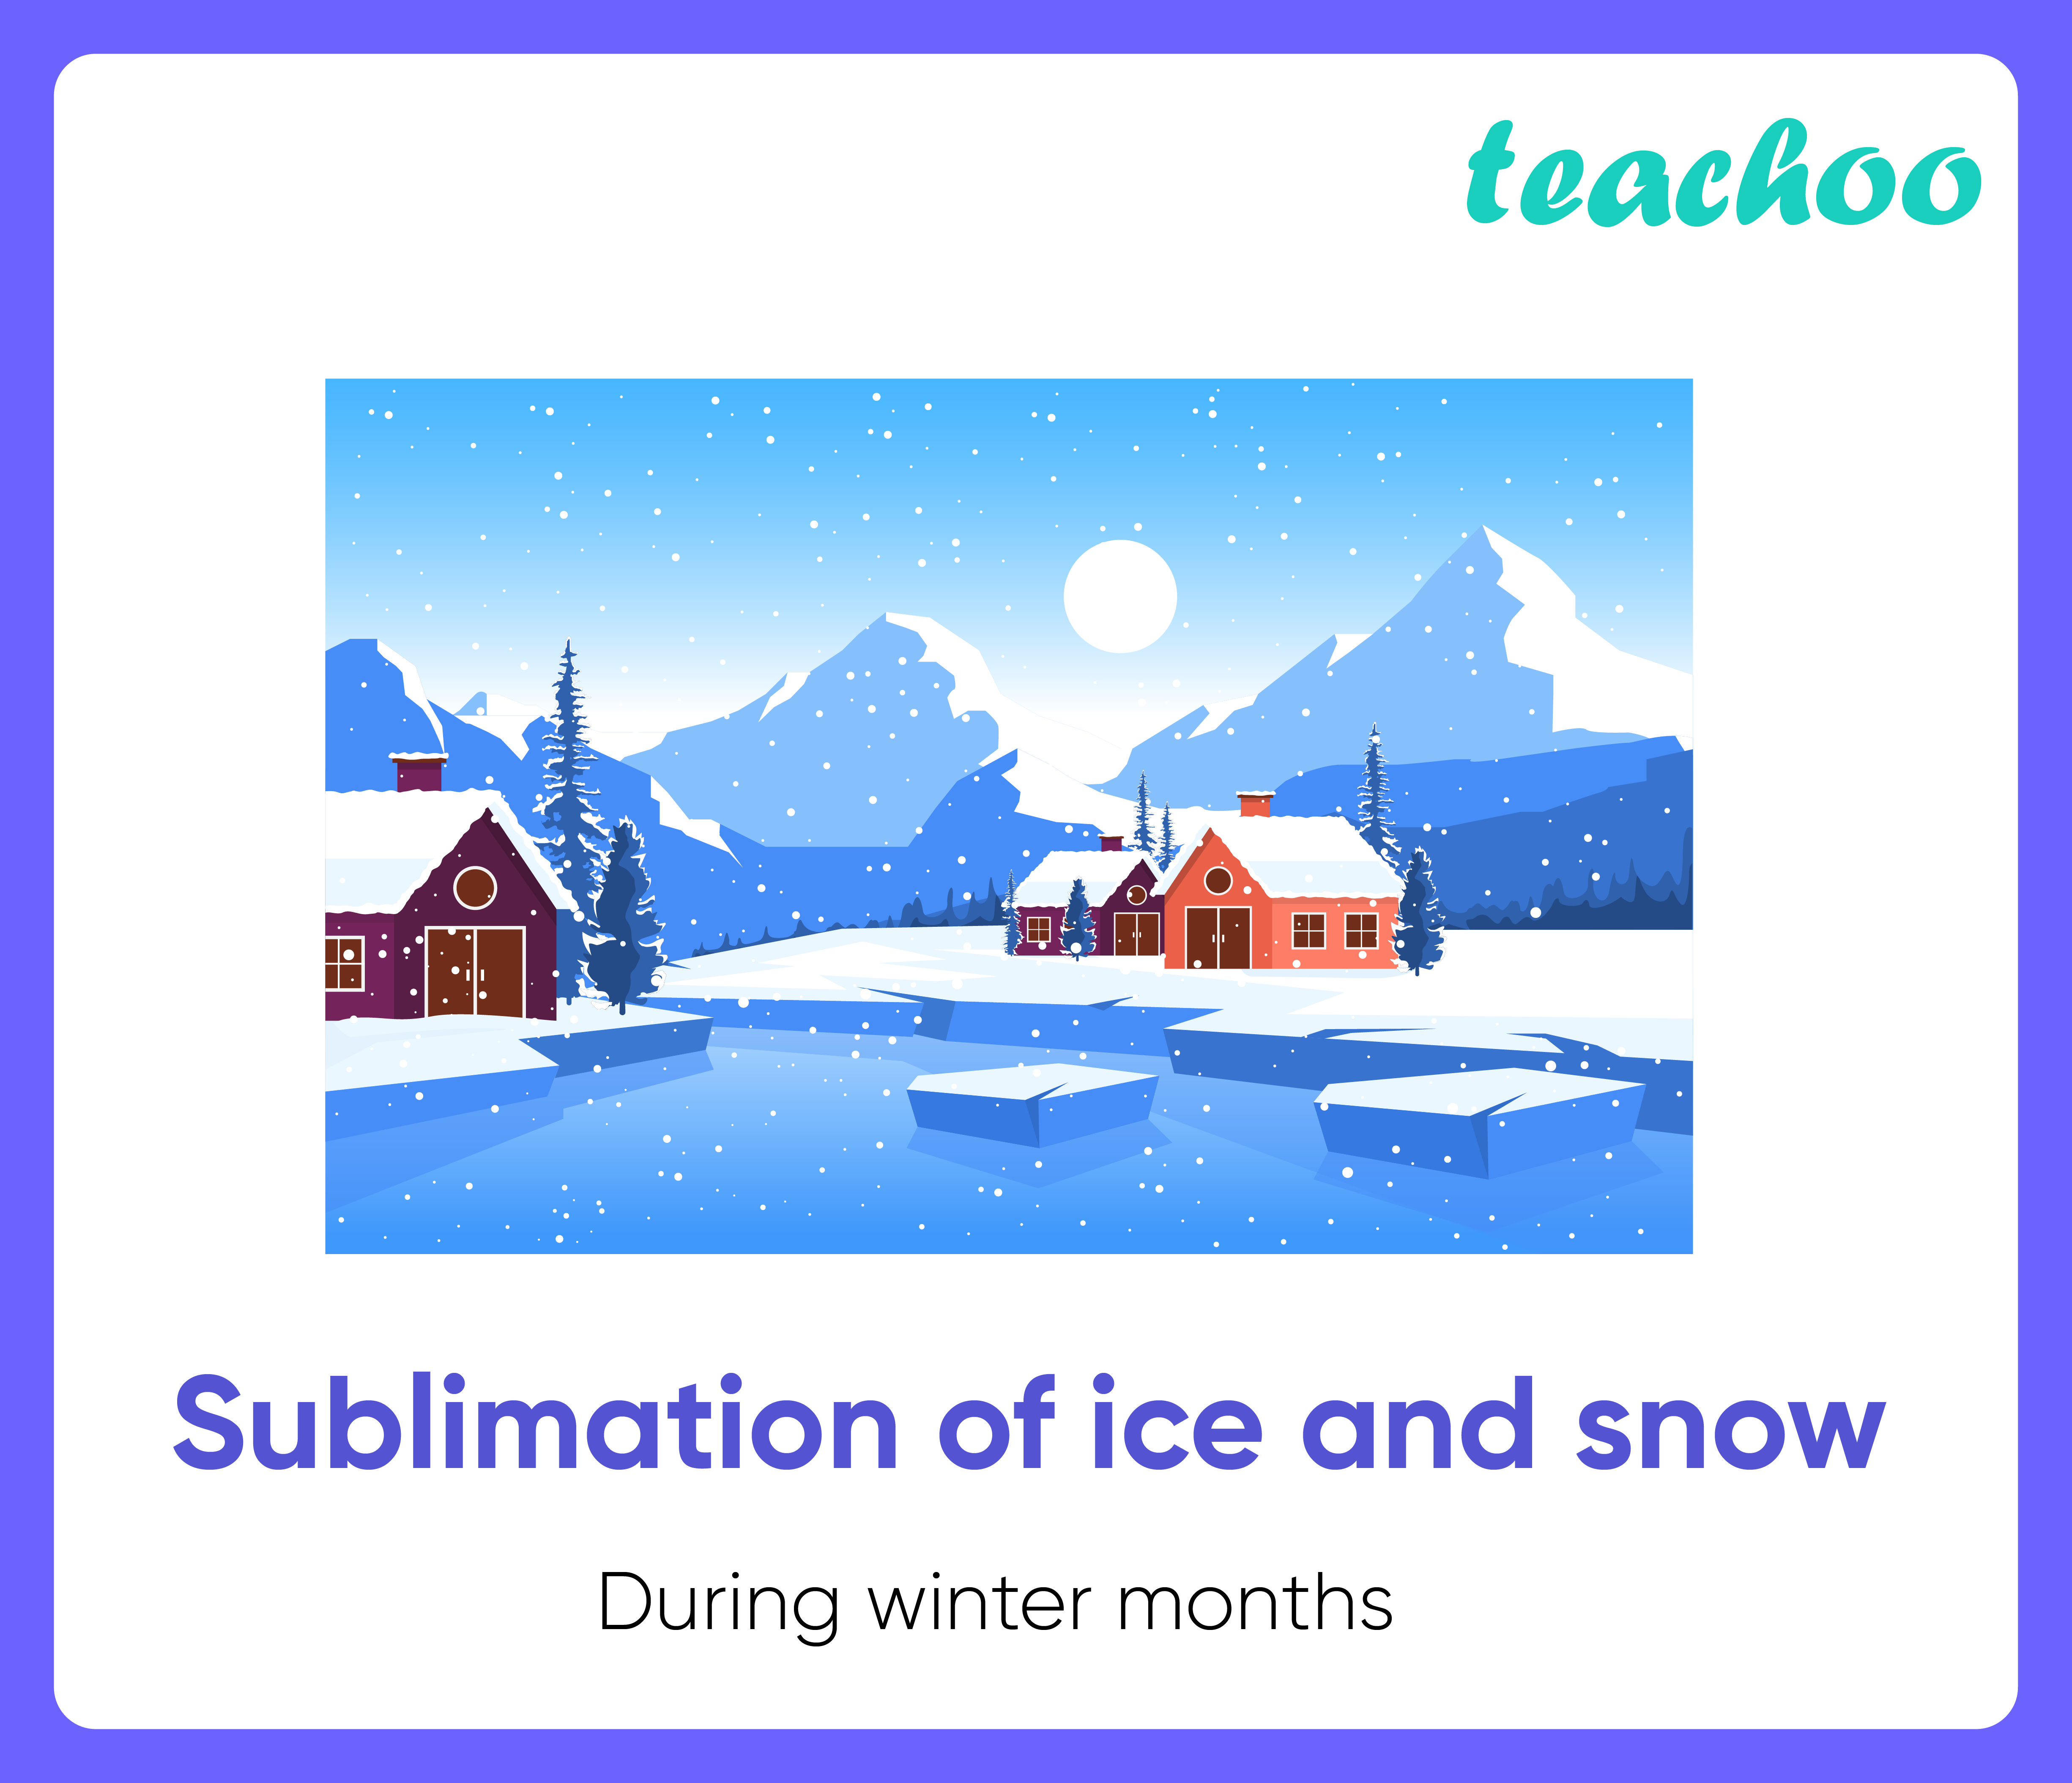 Sublimation of ice and snow-Teachoo-01.png